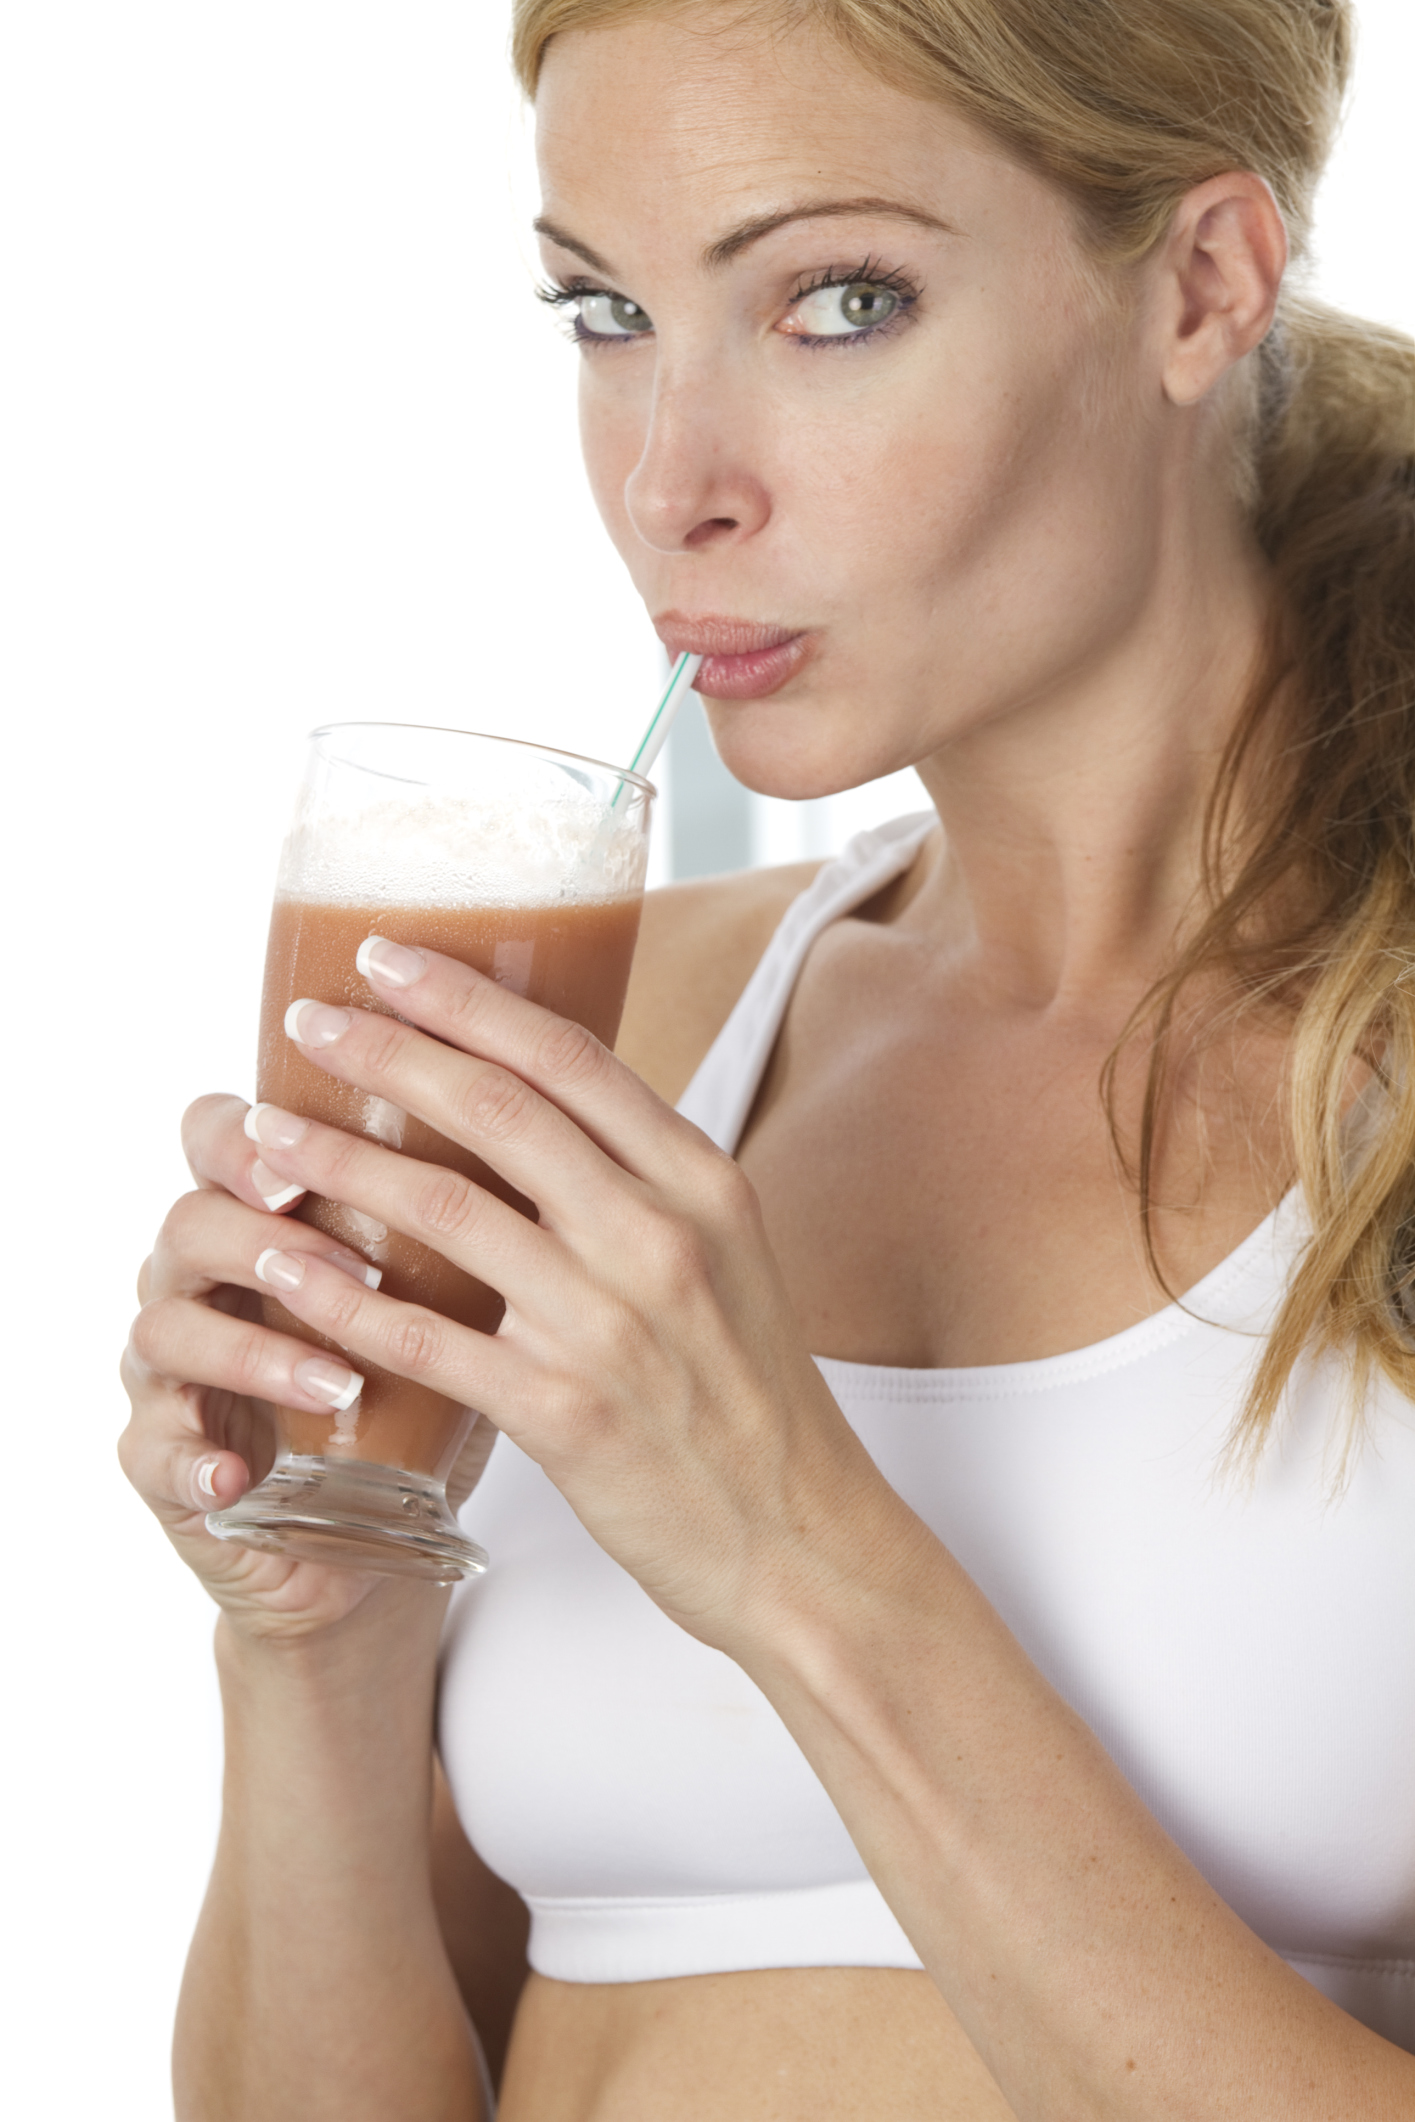 If I Have A Protein Shake After My Workout When Should Eat Meal Livestrong Com